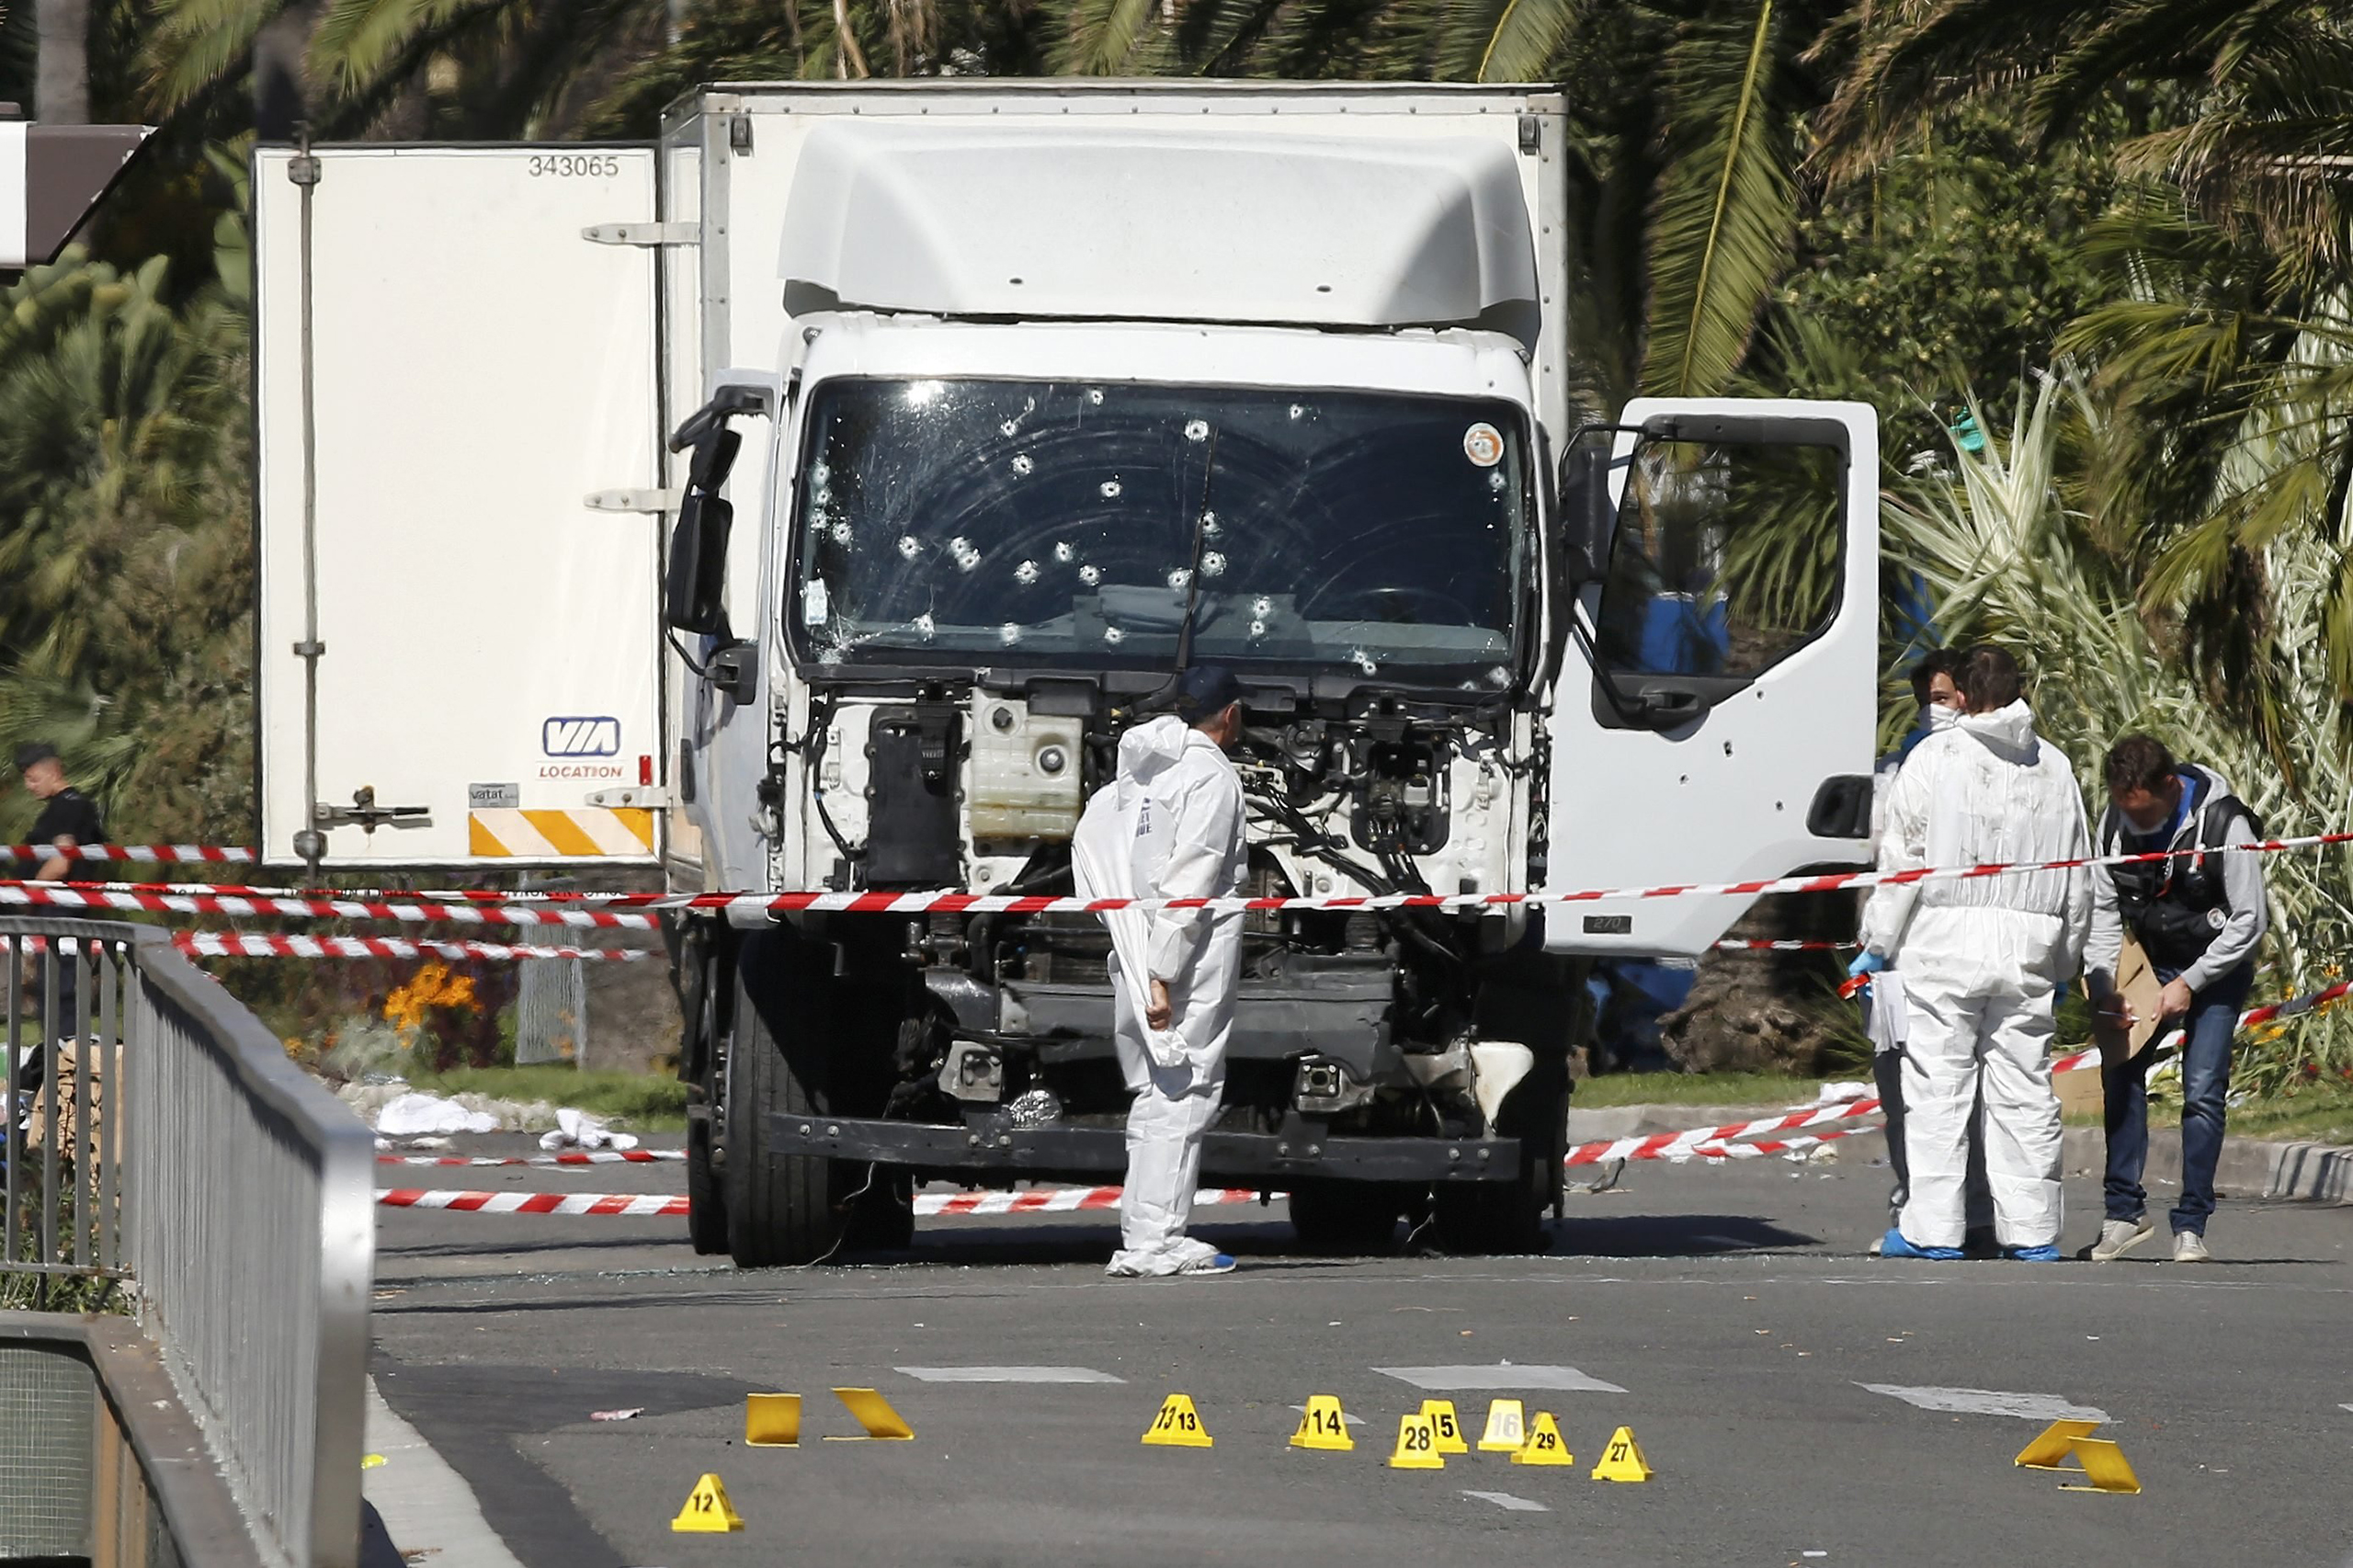 Investigators continue to work at the scene near the truck that was driven into a crowd at high speed, killing scores who were celebrating Bastille Day on July 14, on the Promenade des Anglais in Nice, France, on July 15, 2016.